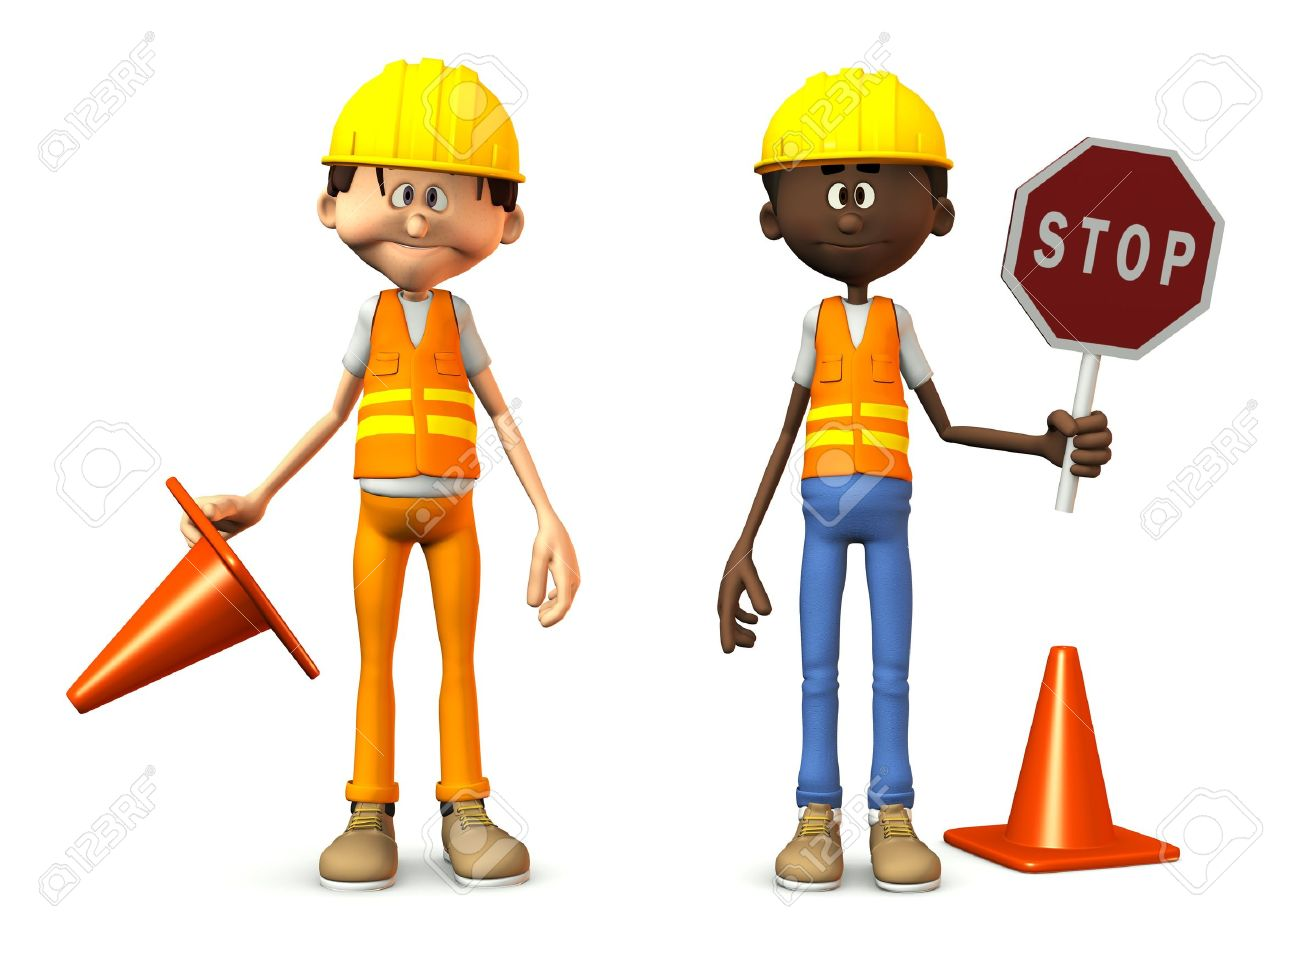 Two cartoon road workers wearing safety vests and holding stop sign and traffic cones. White background. Stock Photo - 11558484